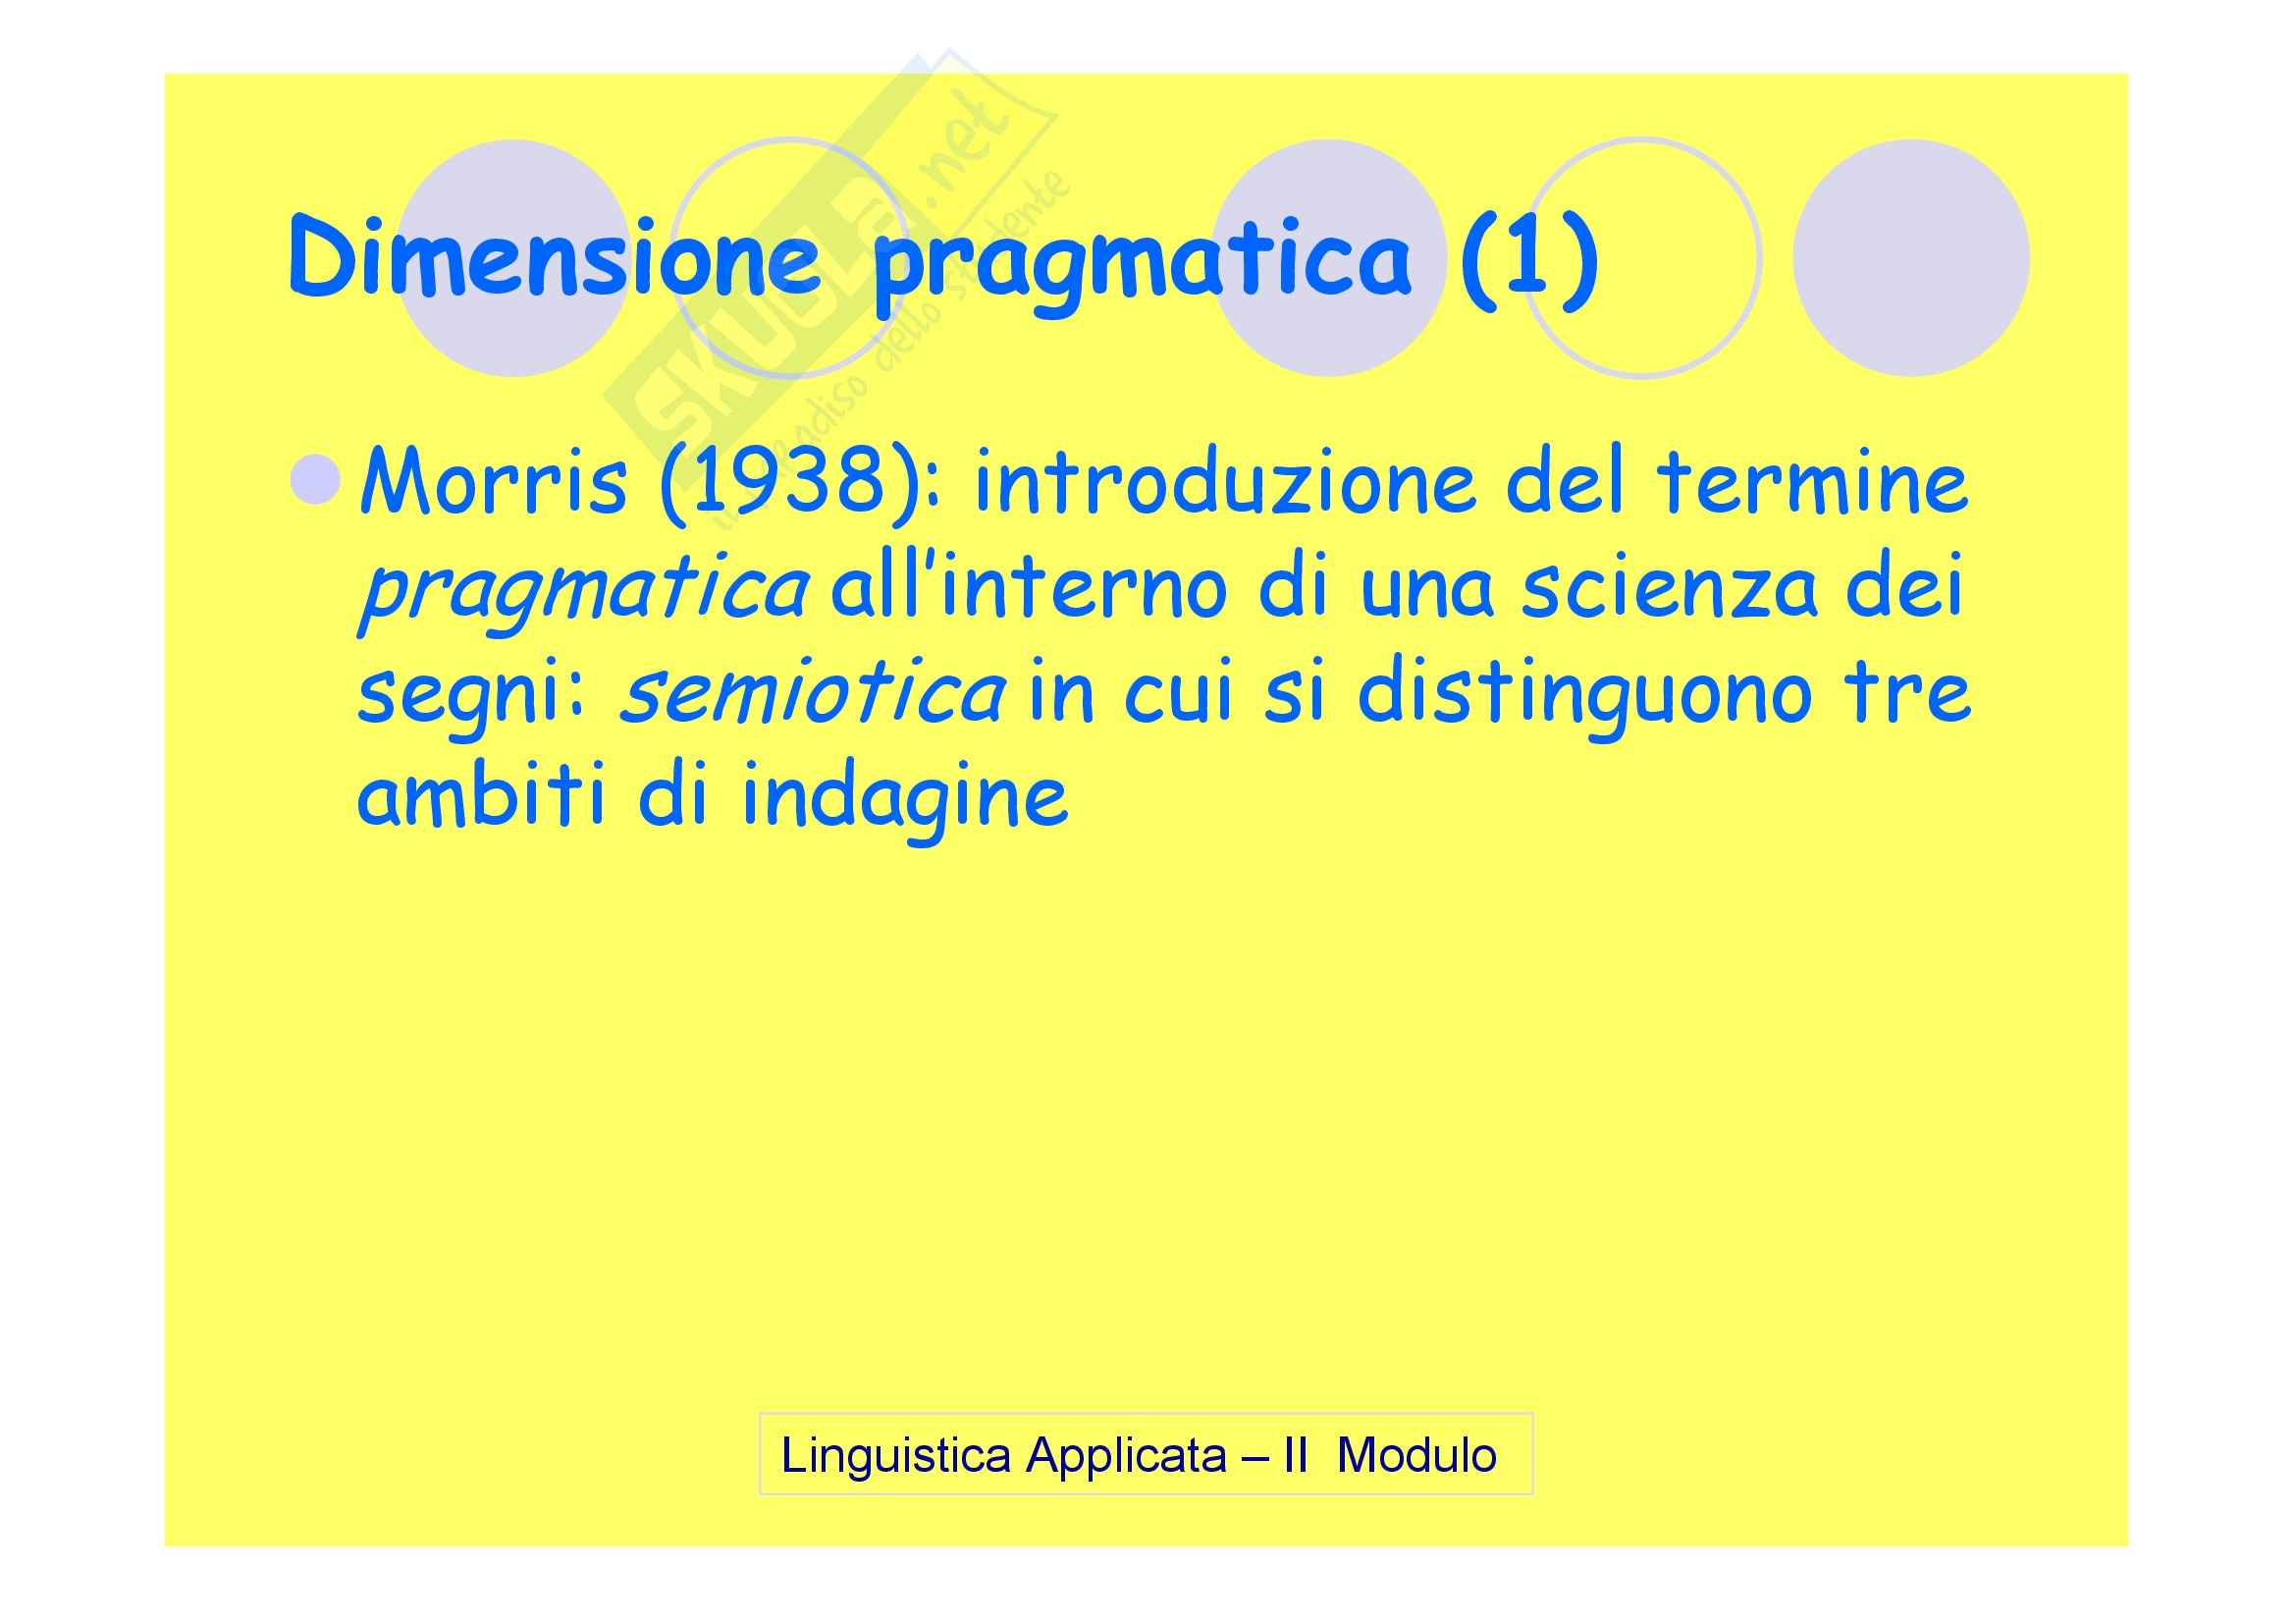 Linguistica applicata - la pragmatica Pag. 6